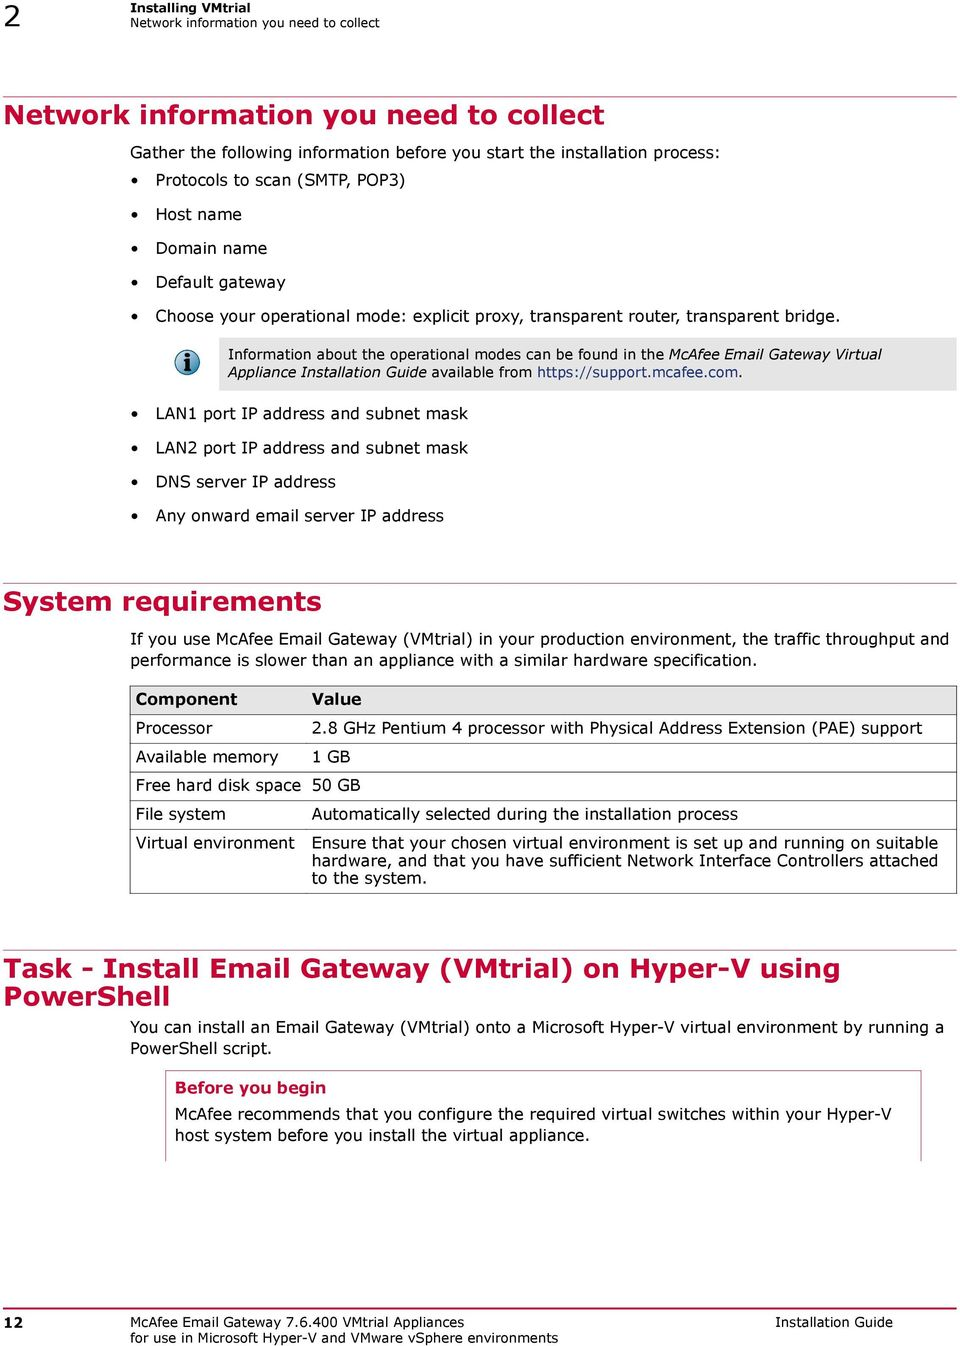 Information about the operational modes can be found in the McAfee Email Gateway Virtual Appliance Installation Guide available from https://support.mcafee.com.